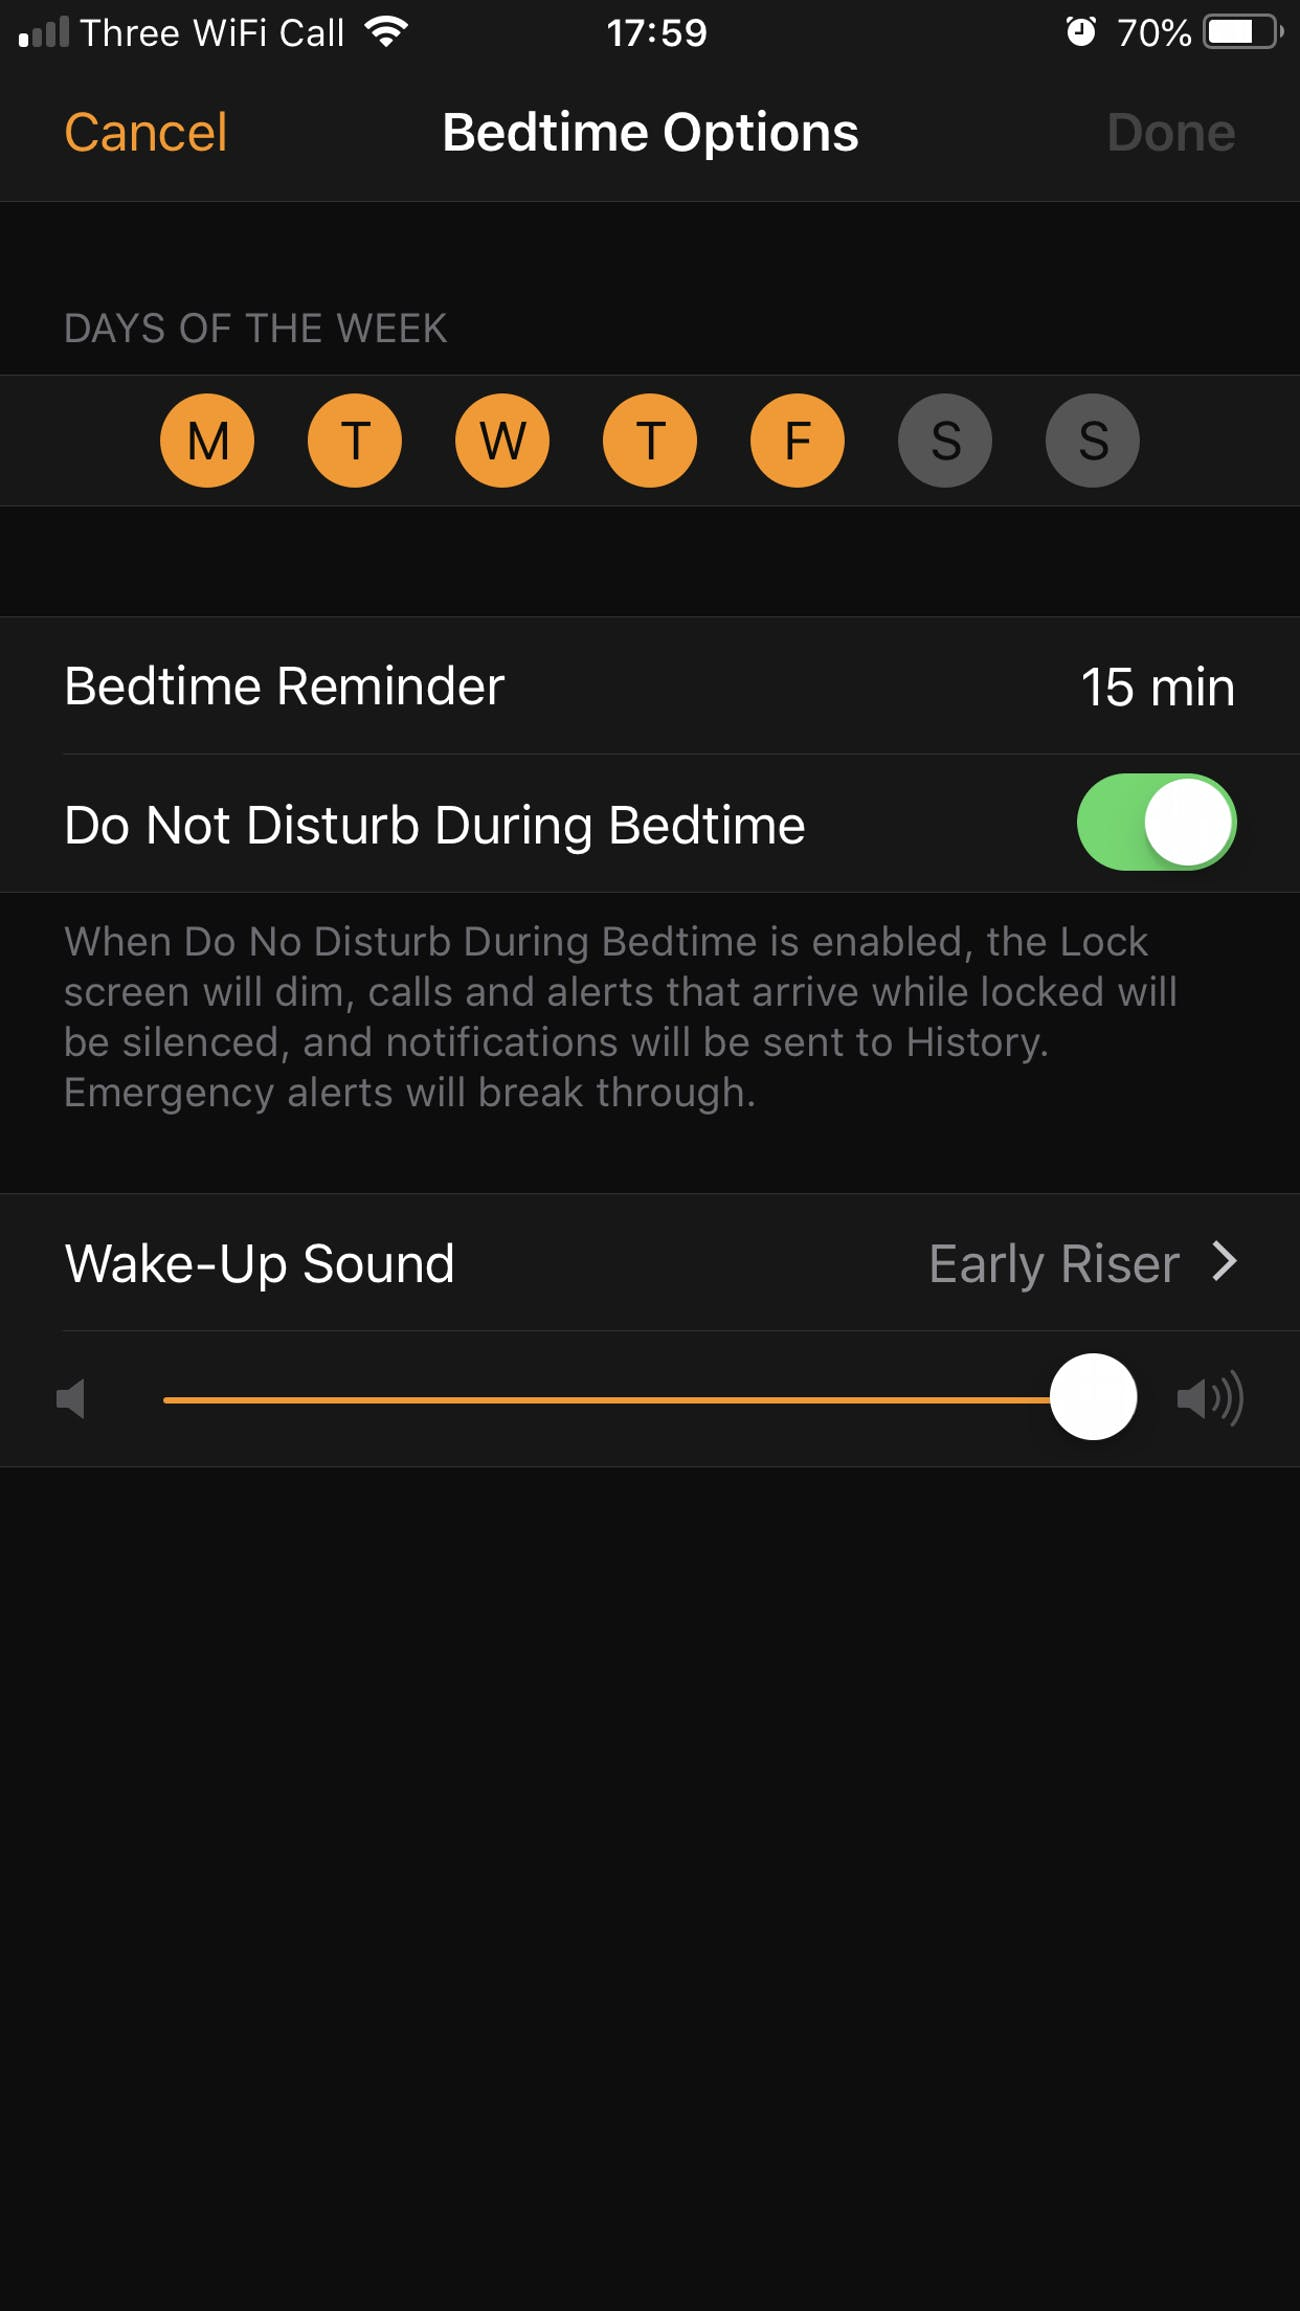 iOS 12: Why Apple's New Bedtime Alarm Will Make Mornings Less